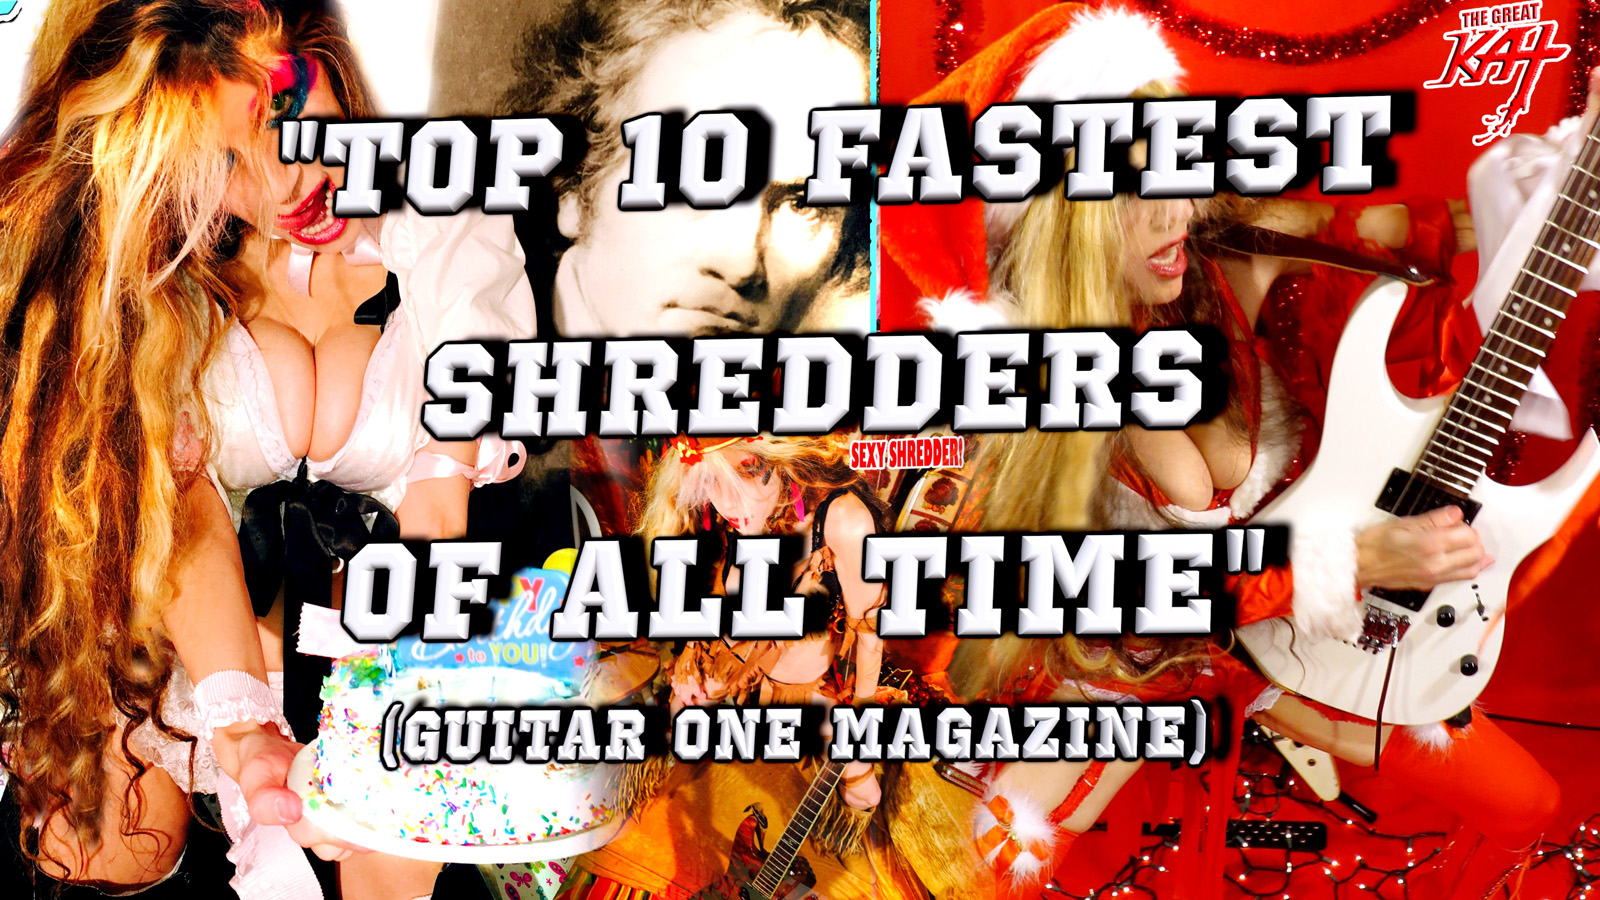 """THE GREAT KAT'S """"TOP 20 HOT SHRED HOLIDAYS!""""  """"TOP 10 FASTEST SHREDDERS OF ALL TIME"""" (Guitar One Magazine)! From The Great Kat's NEW DVD!!!!"""